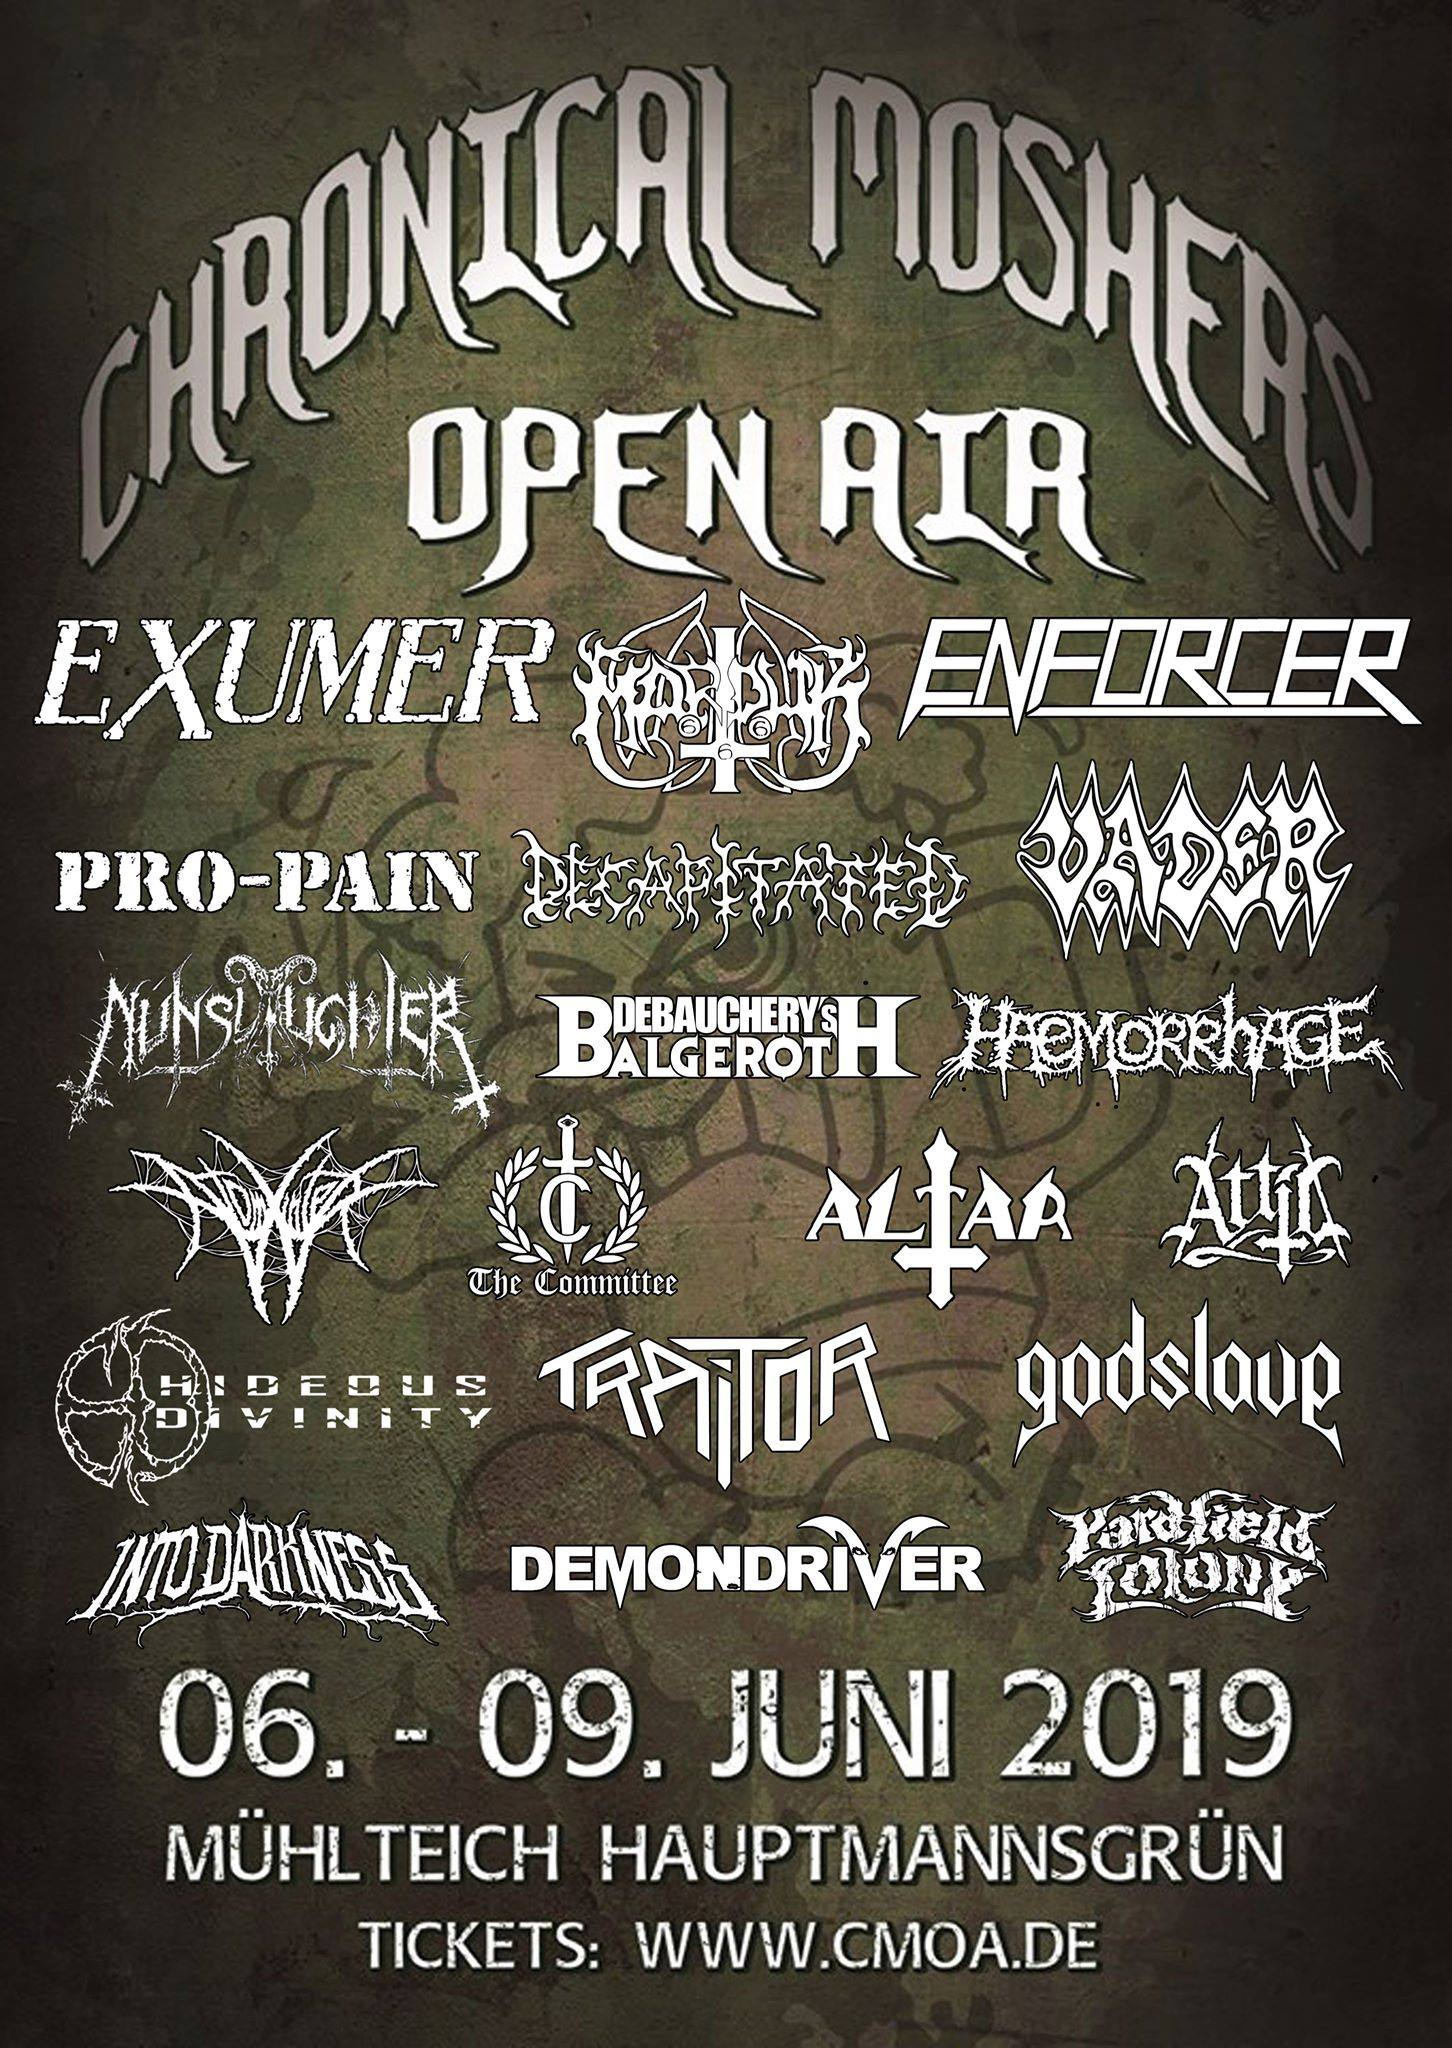 Chronicle Moshers Open Air